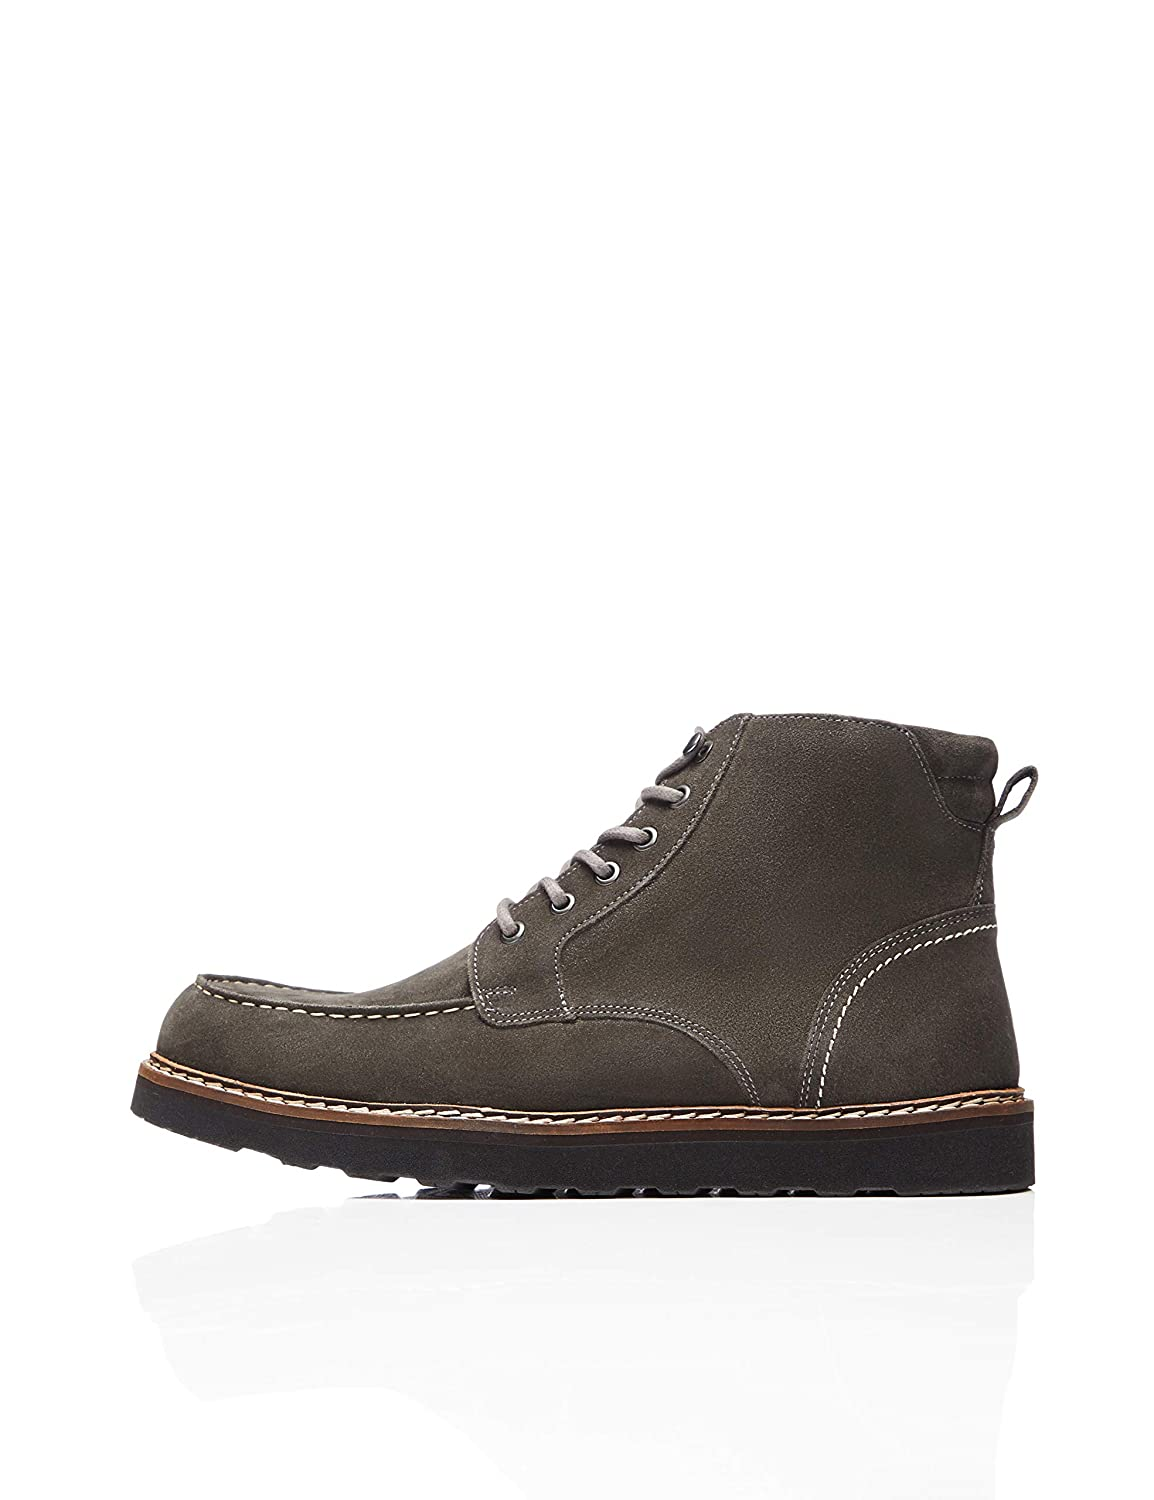 TALLA 41 EU. find. Leather Apron, Botas Chukka Hombre